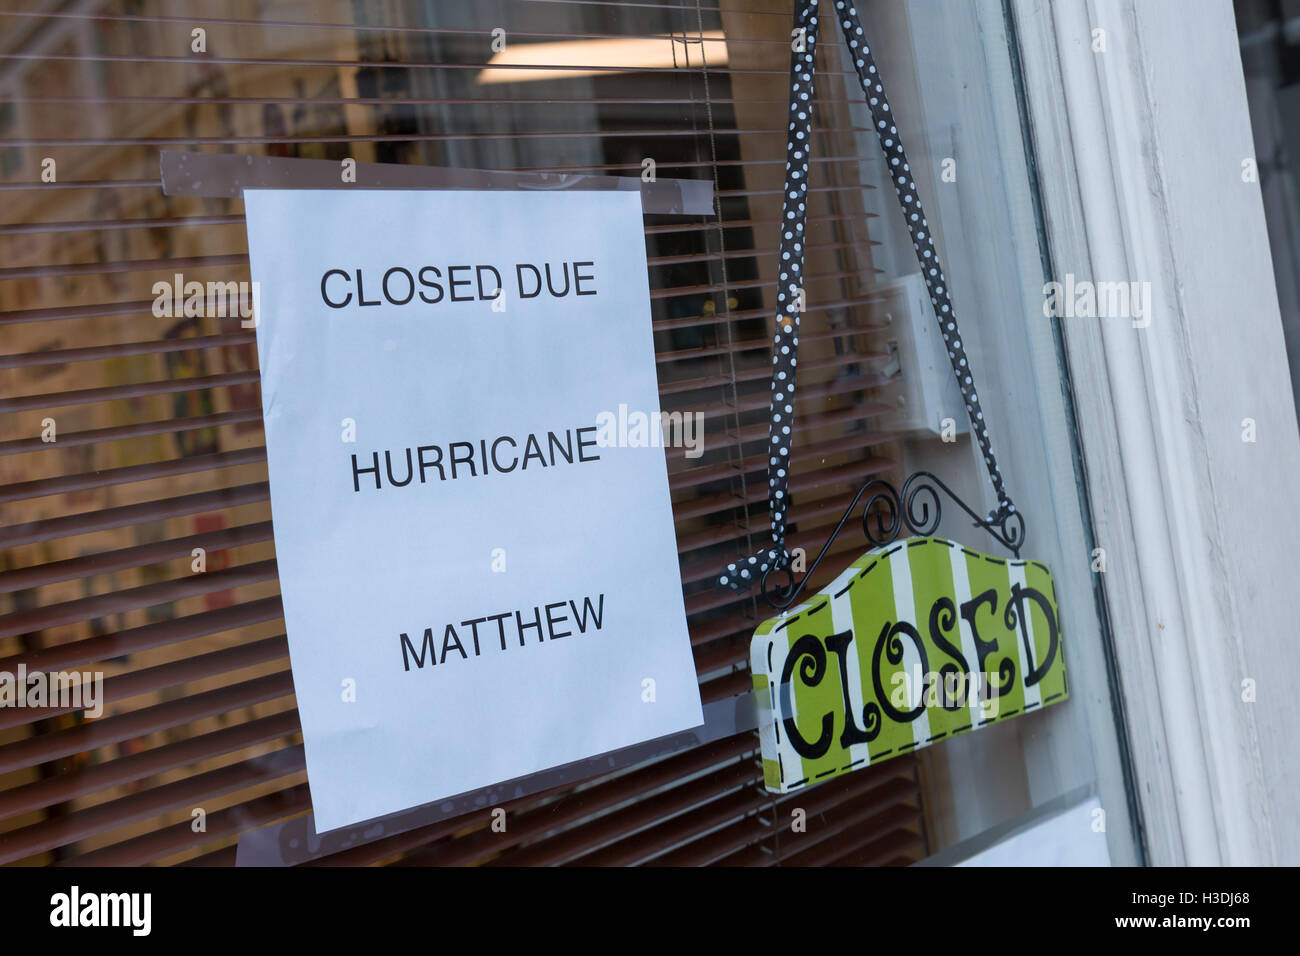 Charleston, South Carolina. 5th October, 2016. Closed sign on a shop along Broad Street in the historic district - Stock Image